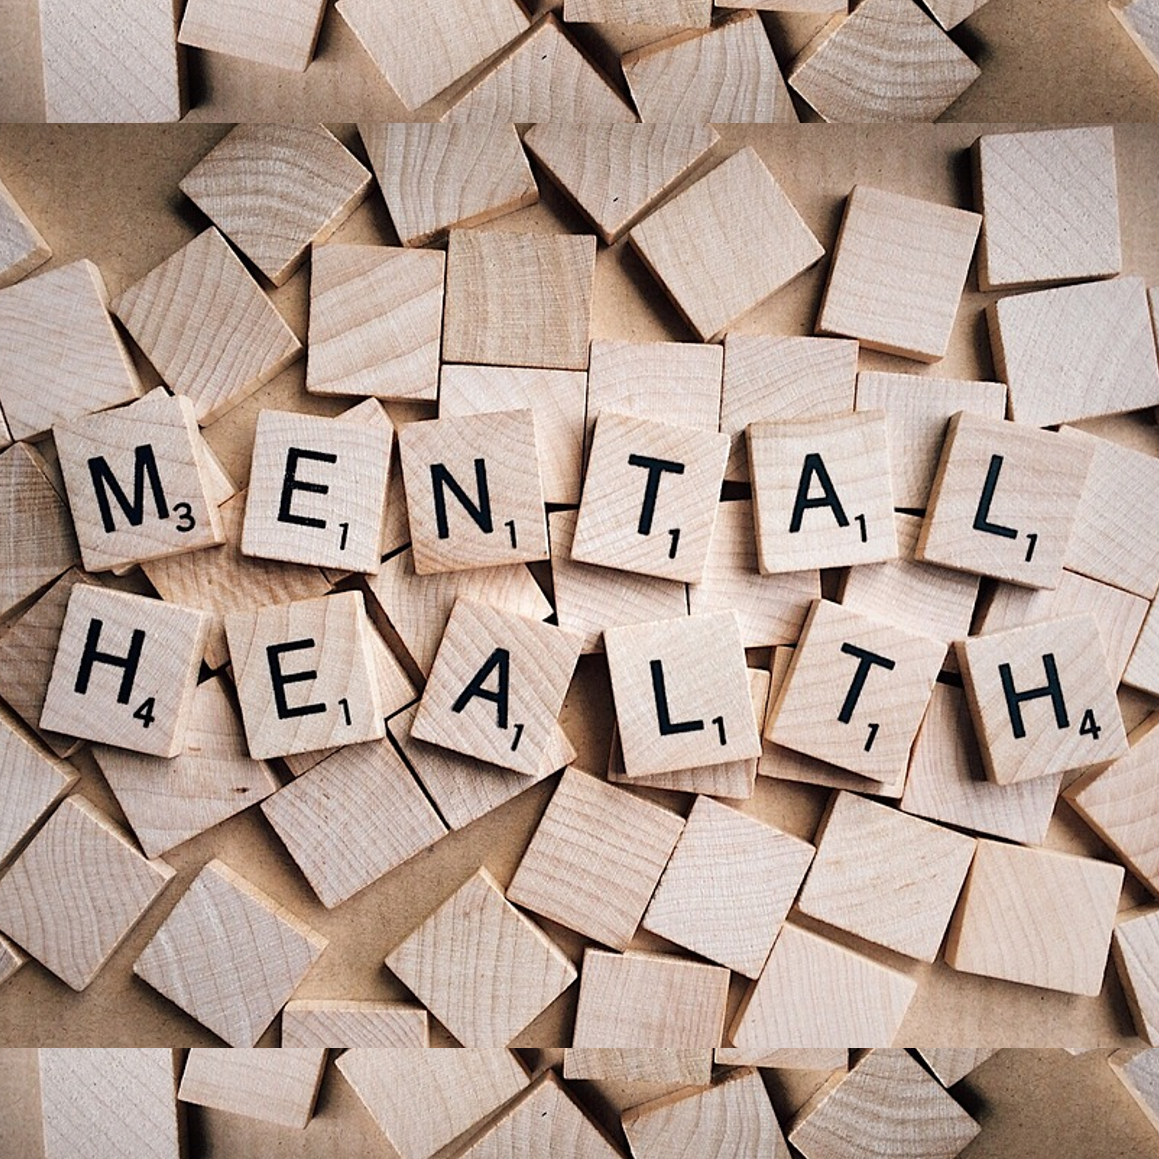 Scrabble tiles spelling out 'mental health'